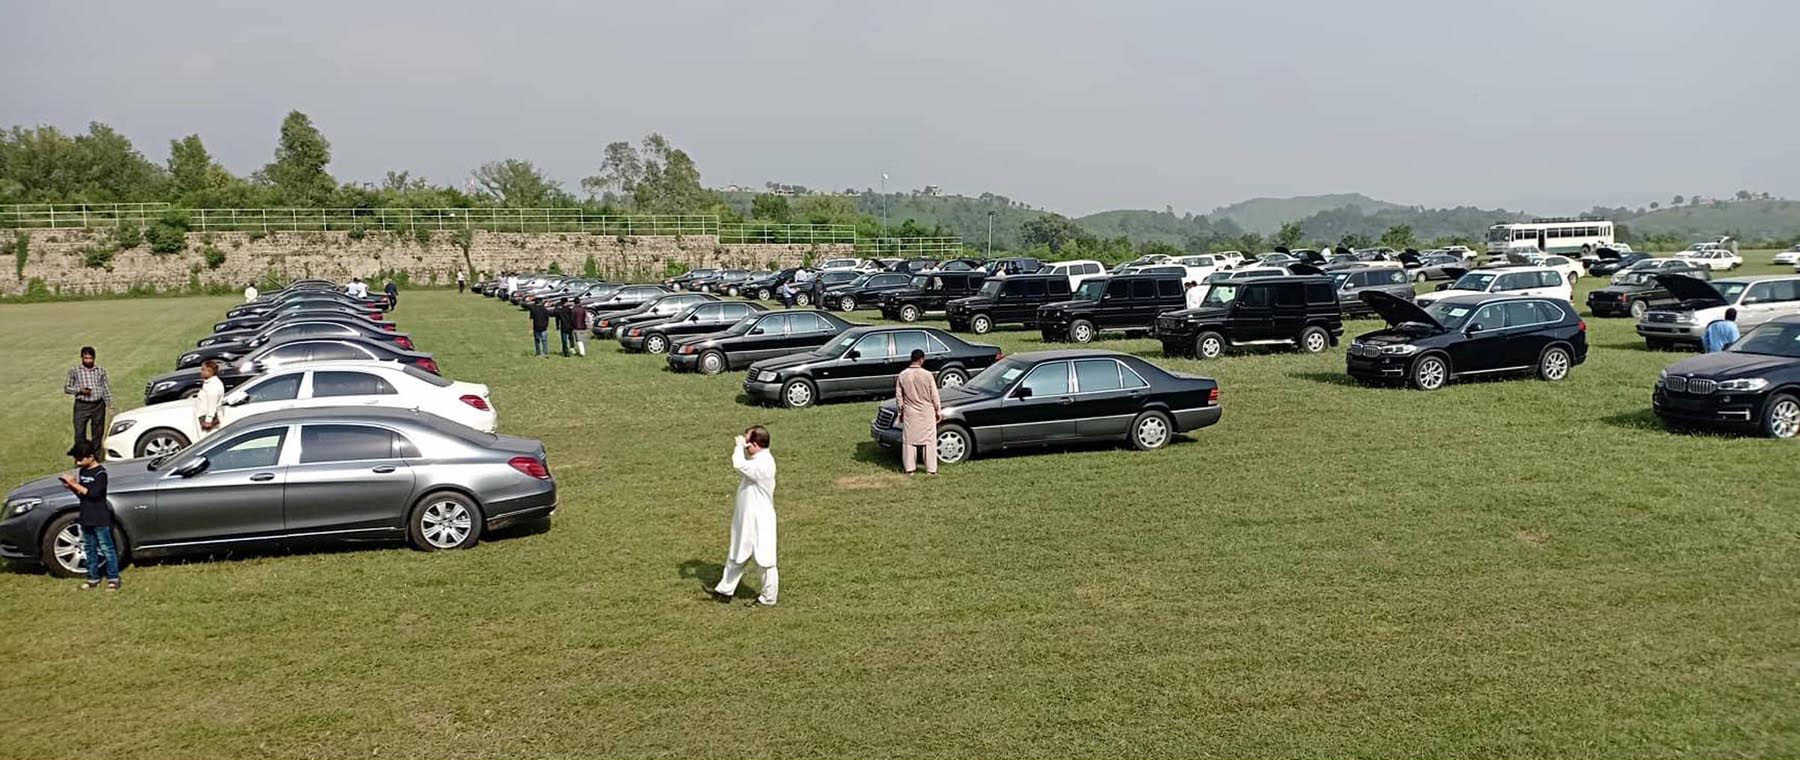 61 Vehicles Sold in First Phase of Auction at Prime Minister House